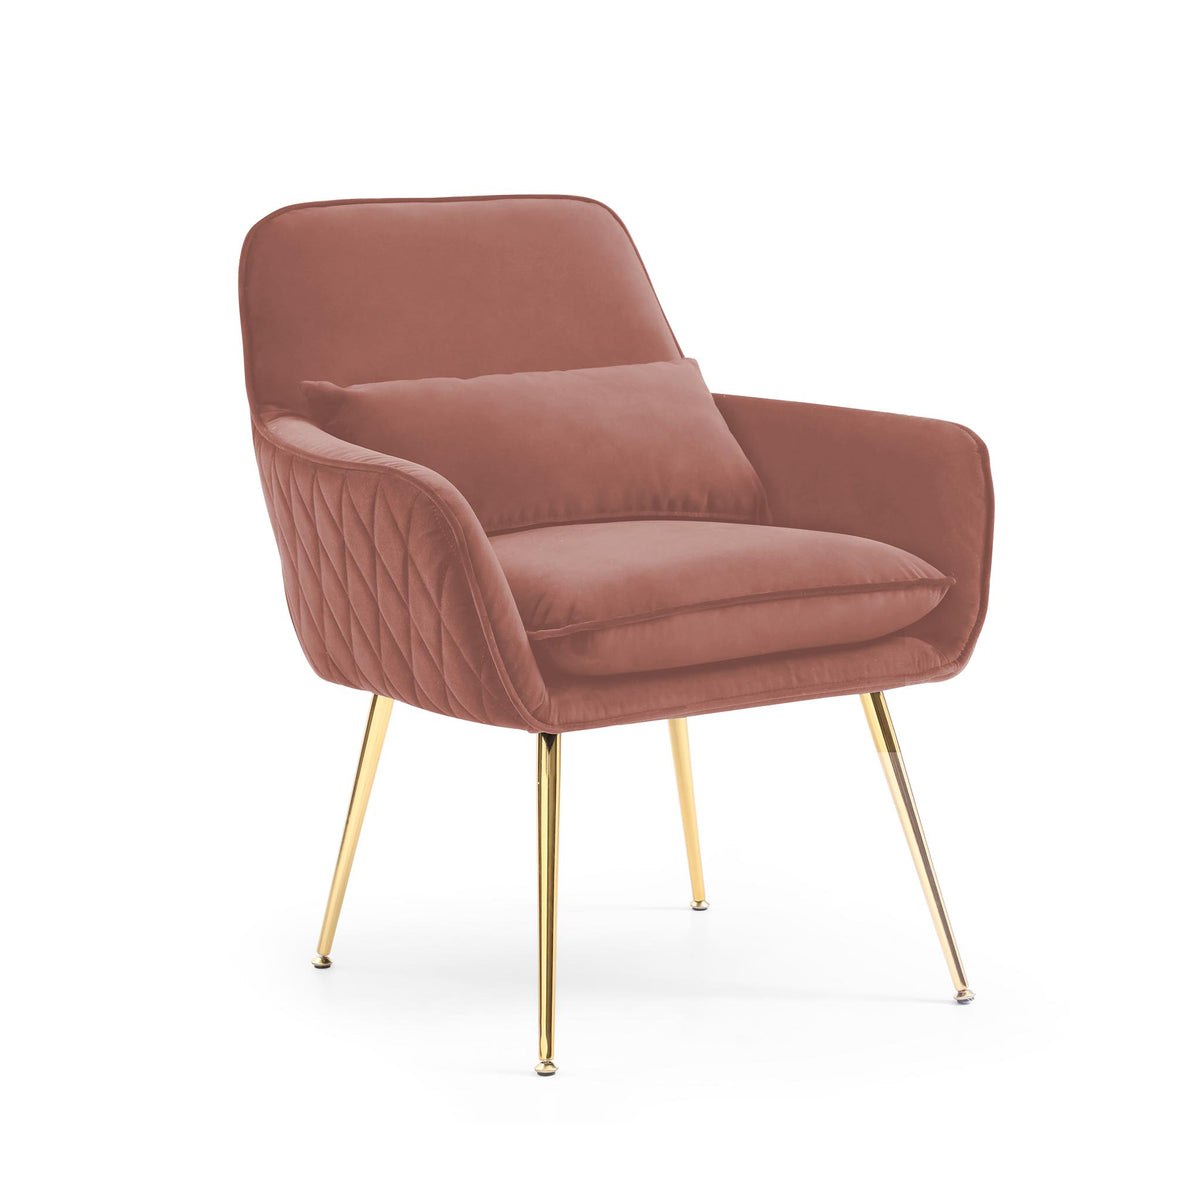 Diamond Blush Pink Velvet Accent Chair from Roseland Furniture